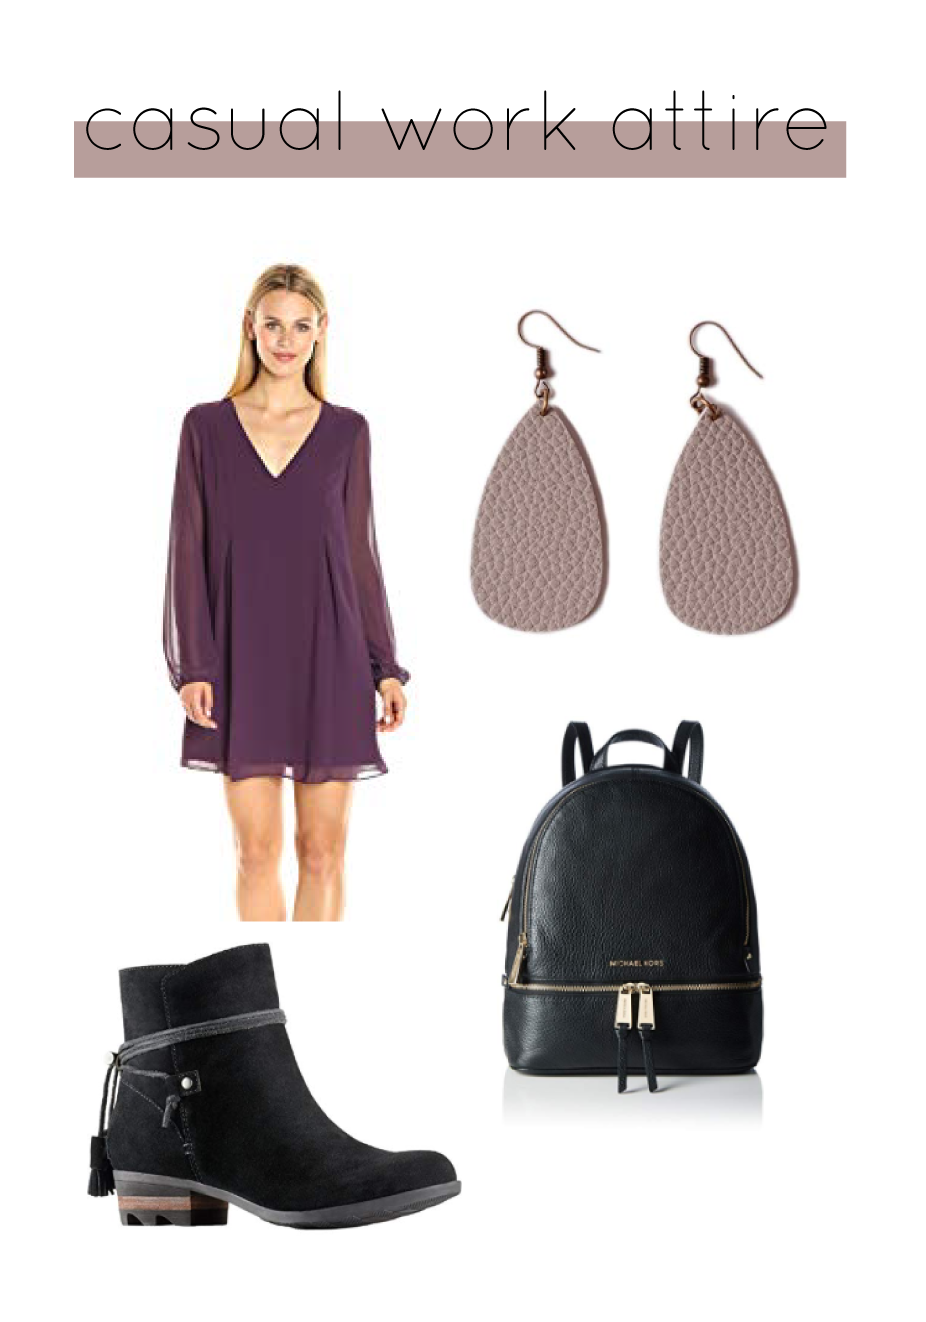 Outfit Details:  BCBG Dress  |  Sorel Booties  |  Michael Kors Backpack  |  L&N Rainbery Earrings